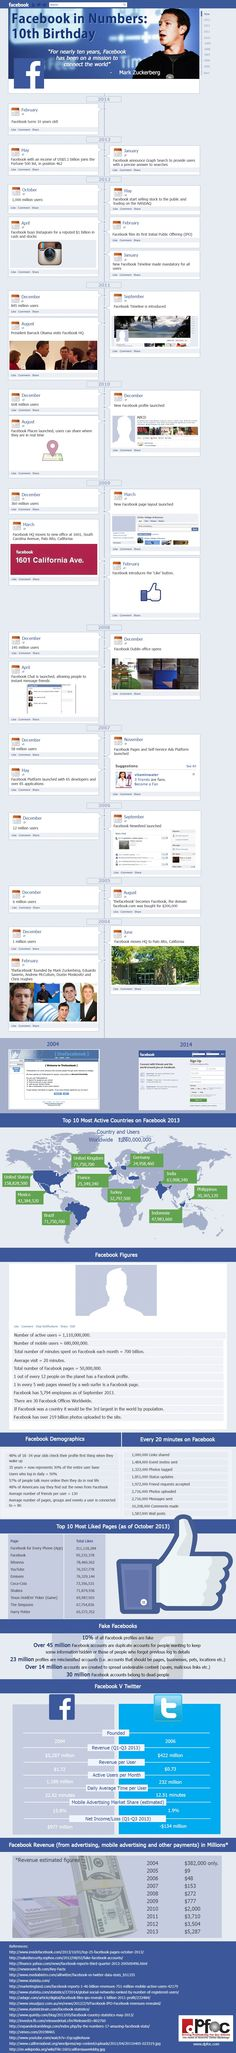 FaceBook in numbers: 10th birthday #infographic